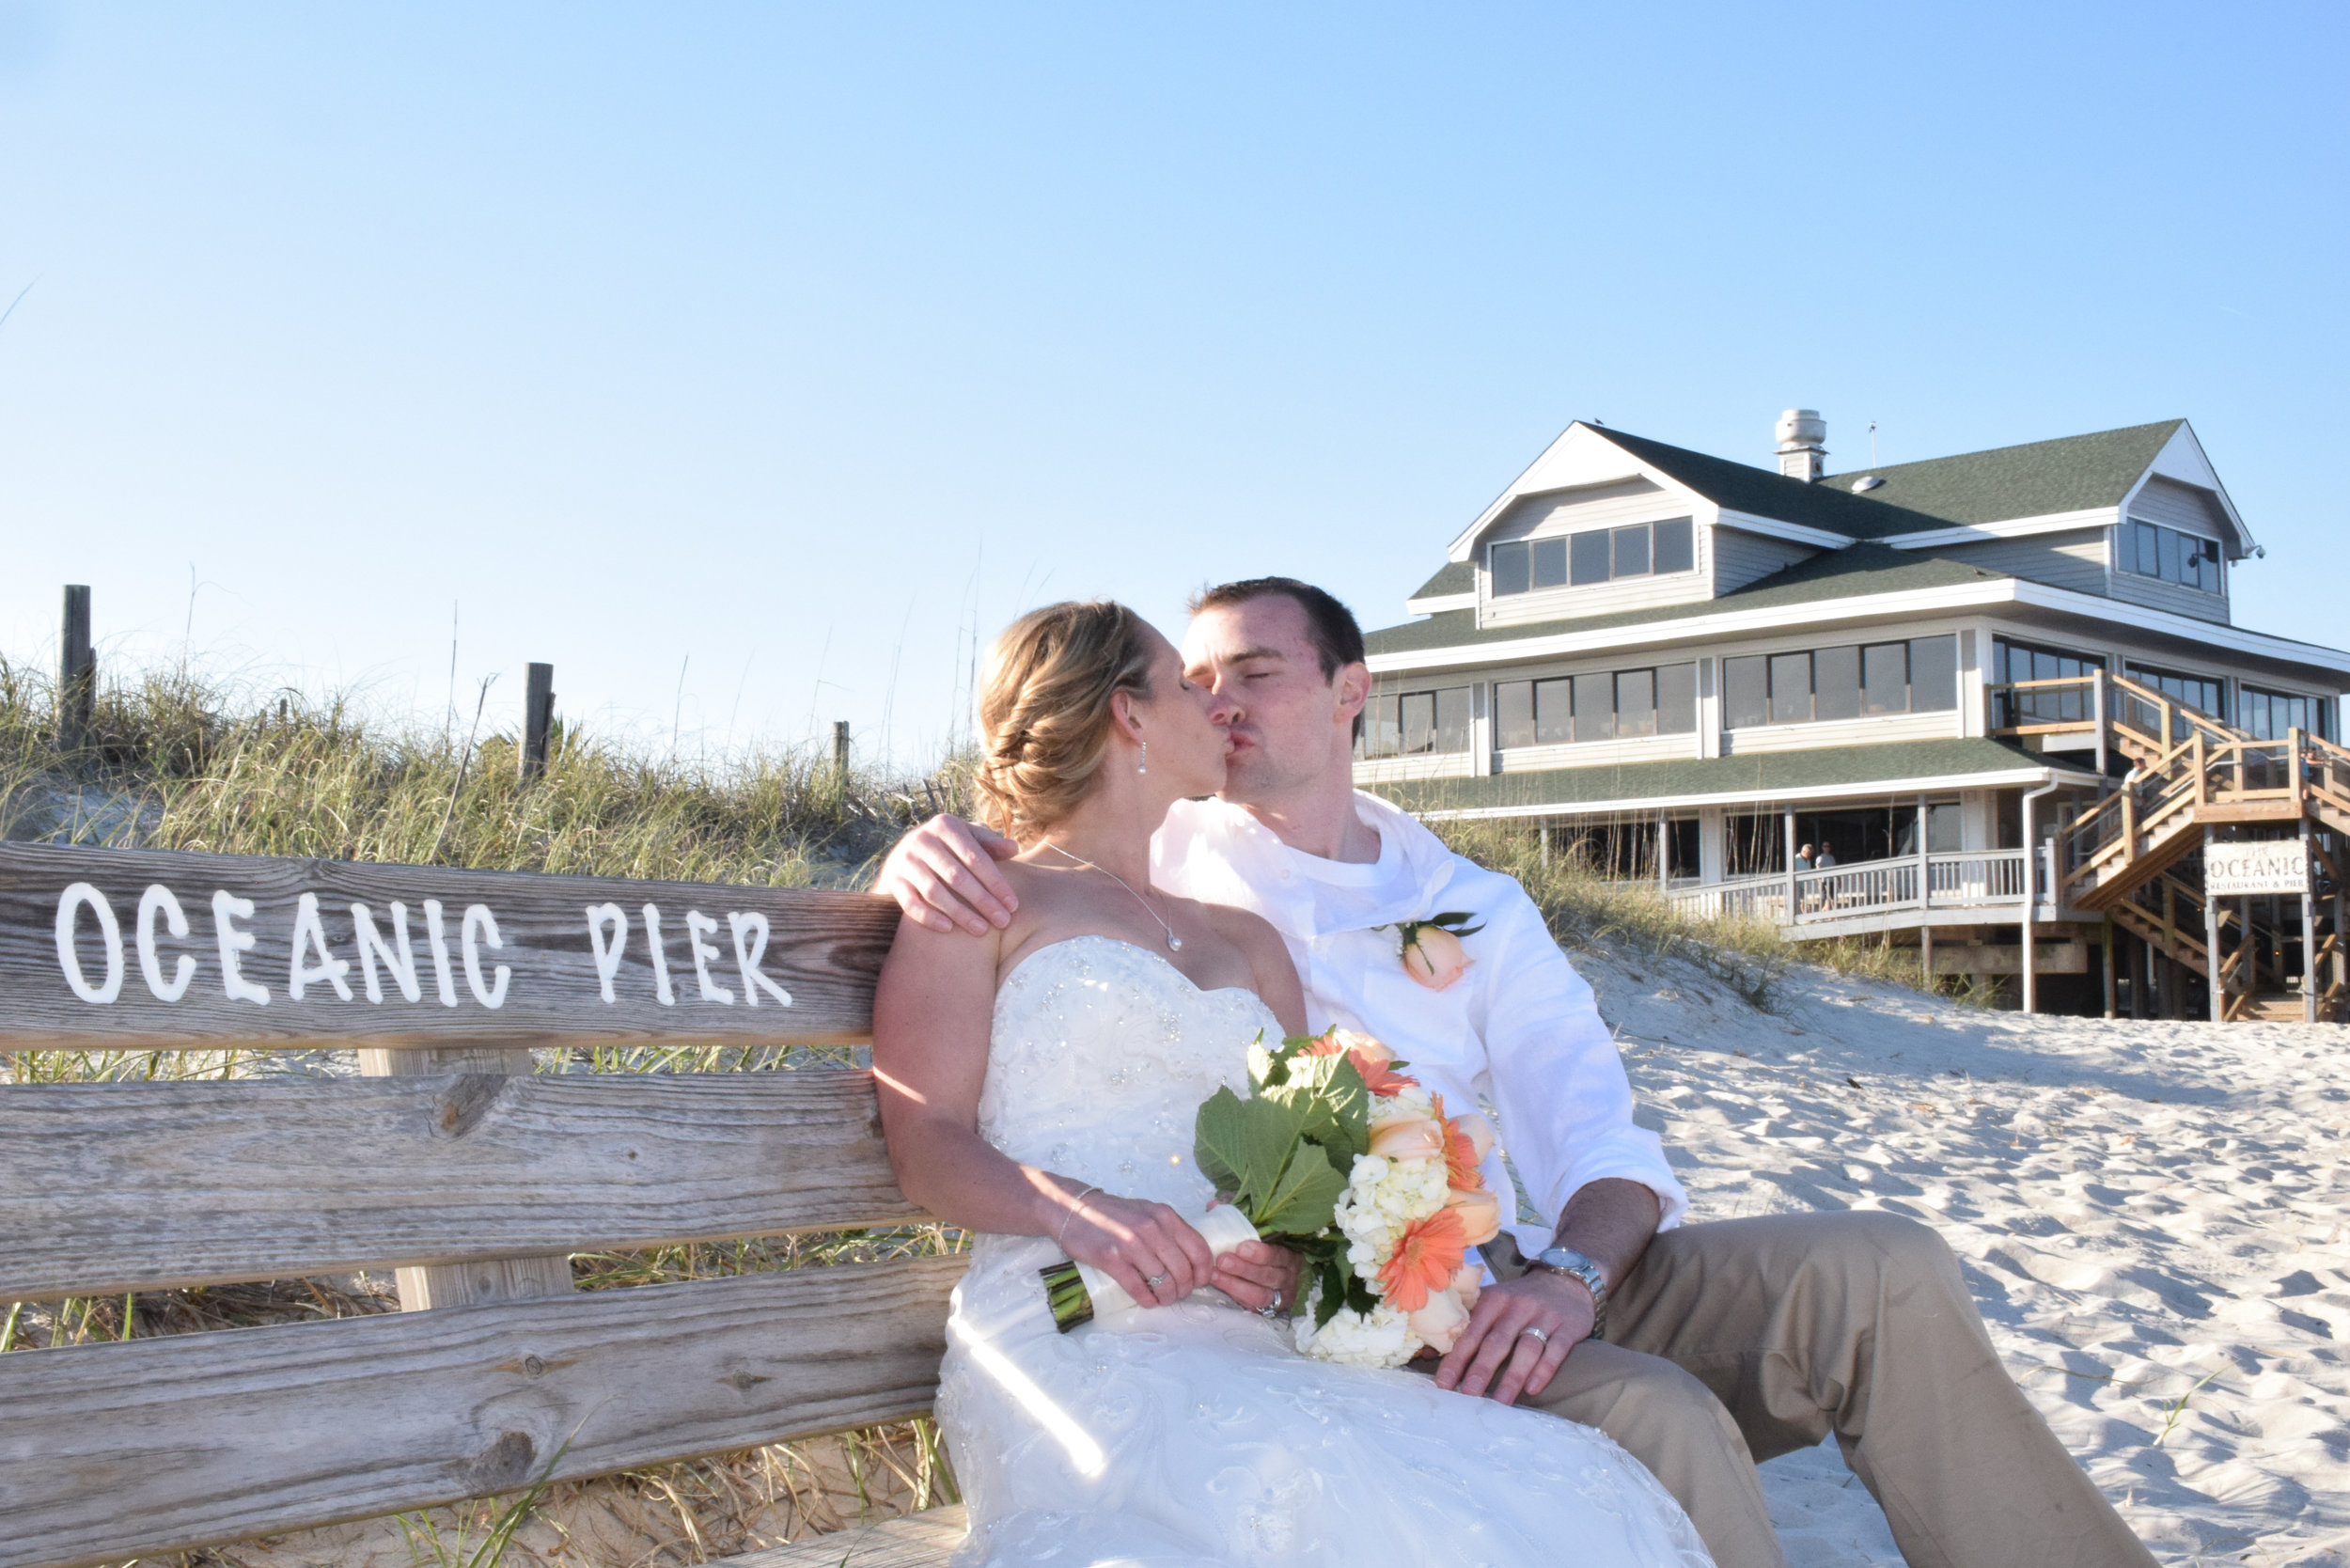 Newly married couple kissing on bench.